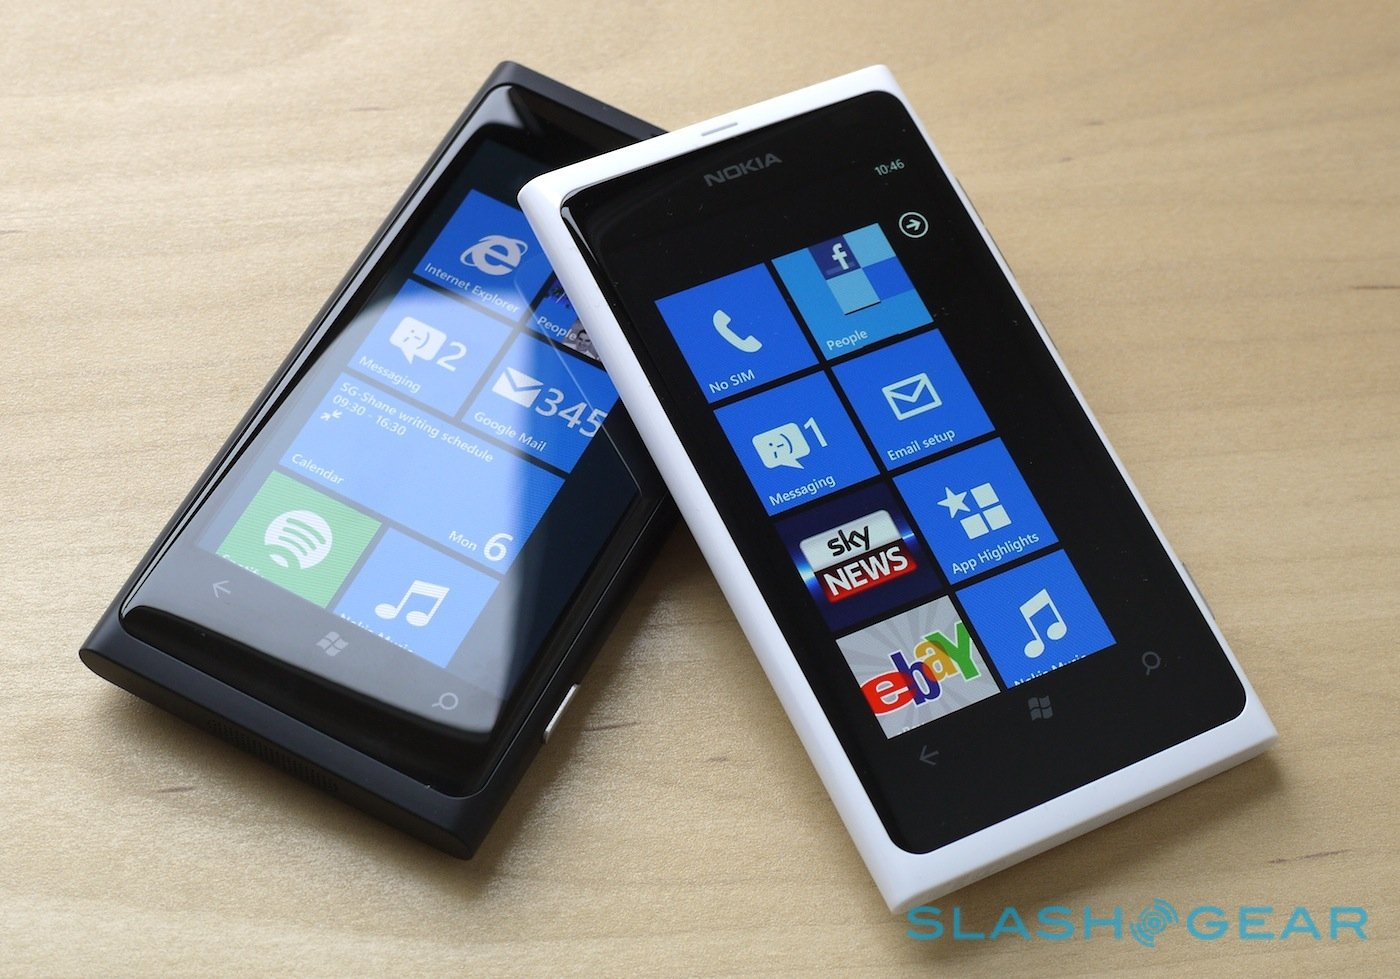 Nokia Glance' coming to all lumia phones with July amber update